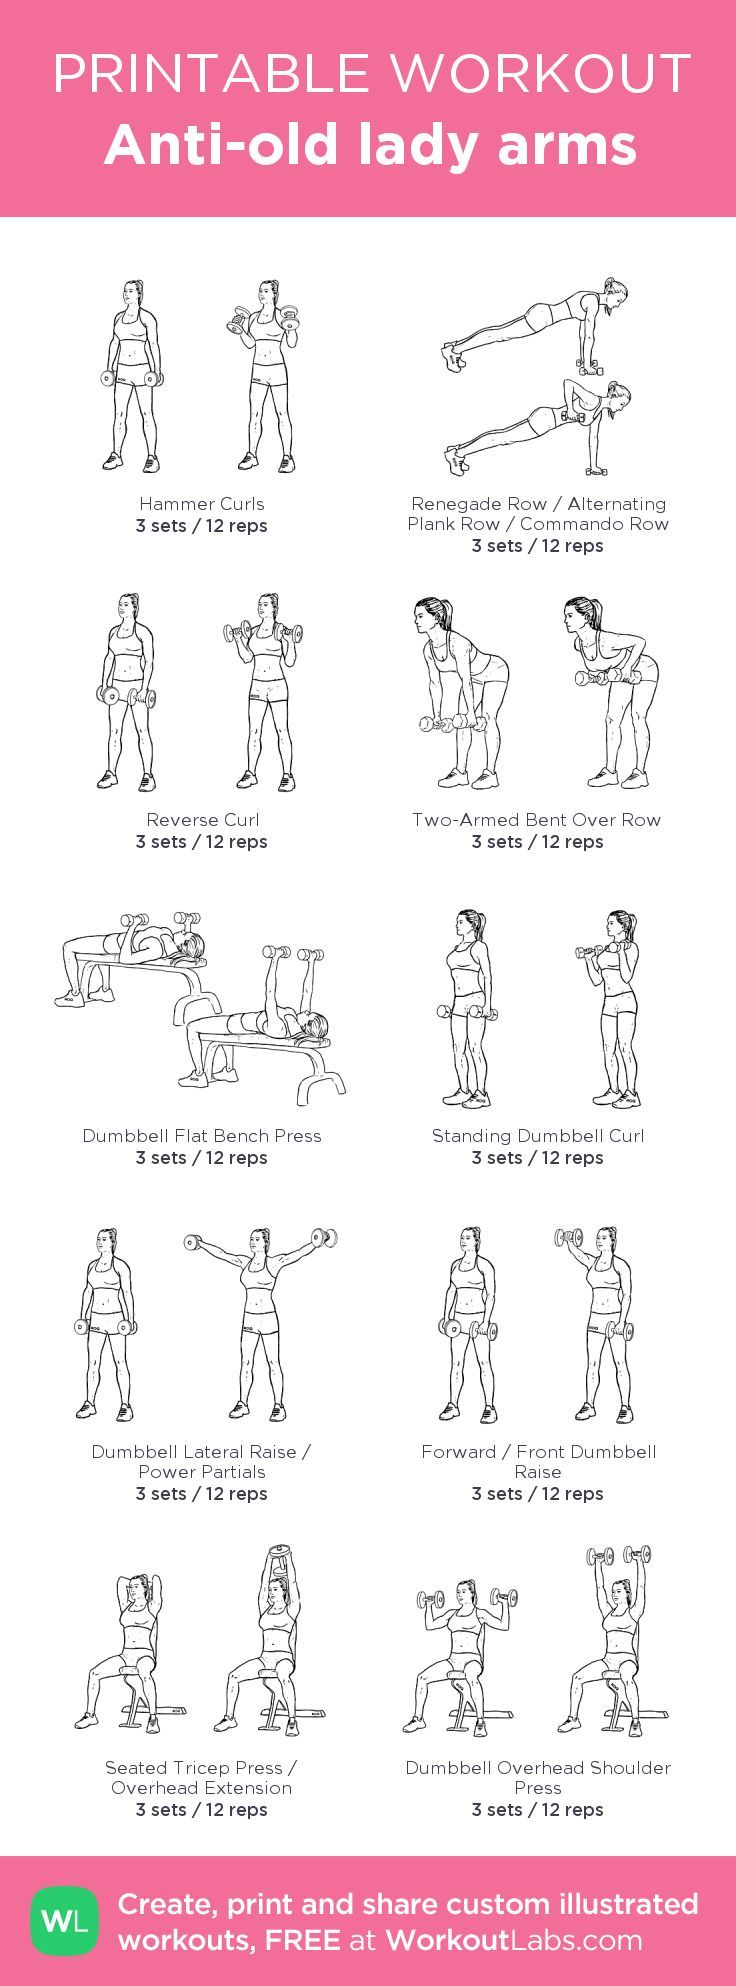 Anti-old lady arms: my visual workout created at http://WorkoutLabs.com • Click through to customize and download as a FREE PDF! #customworkout